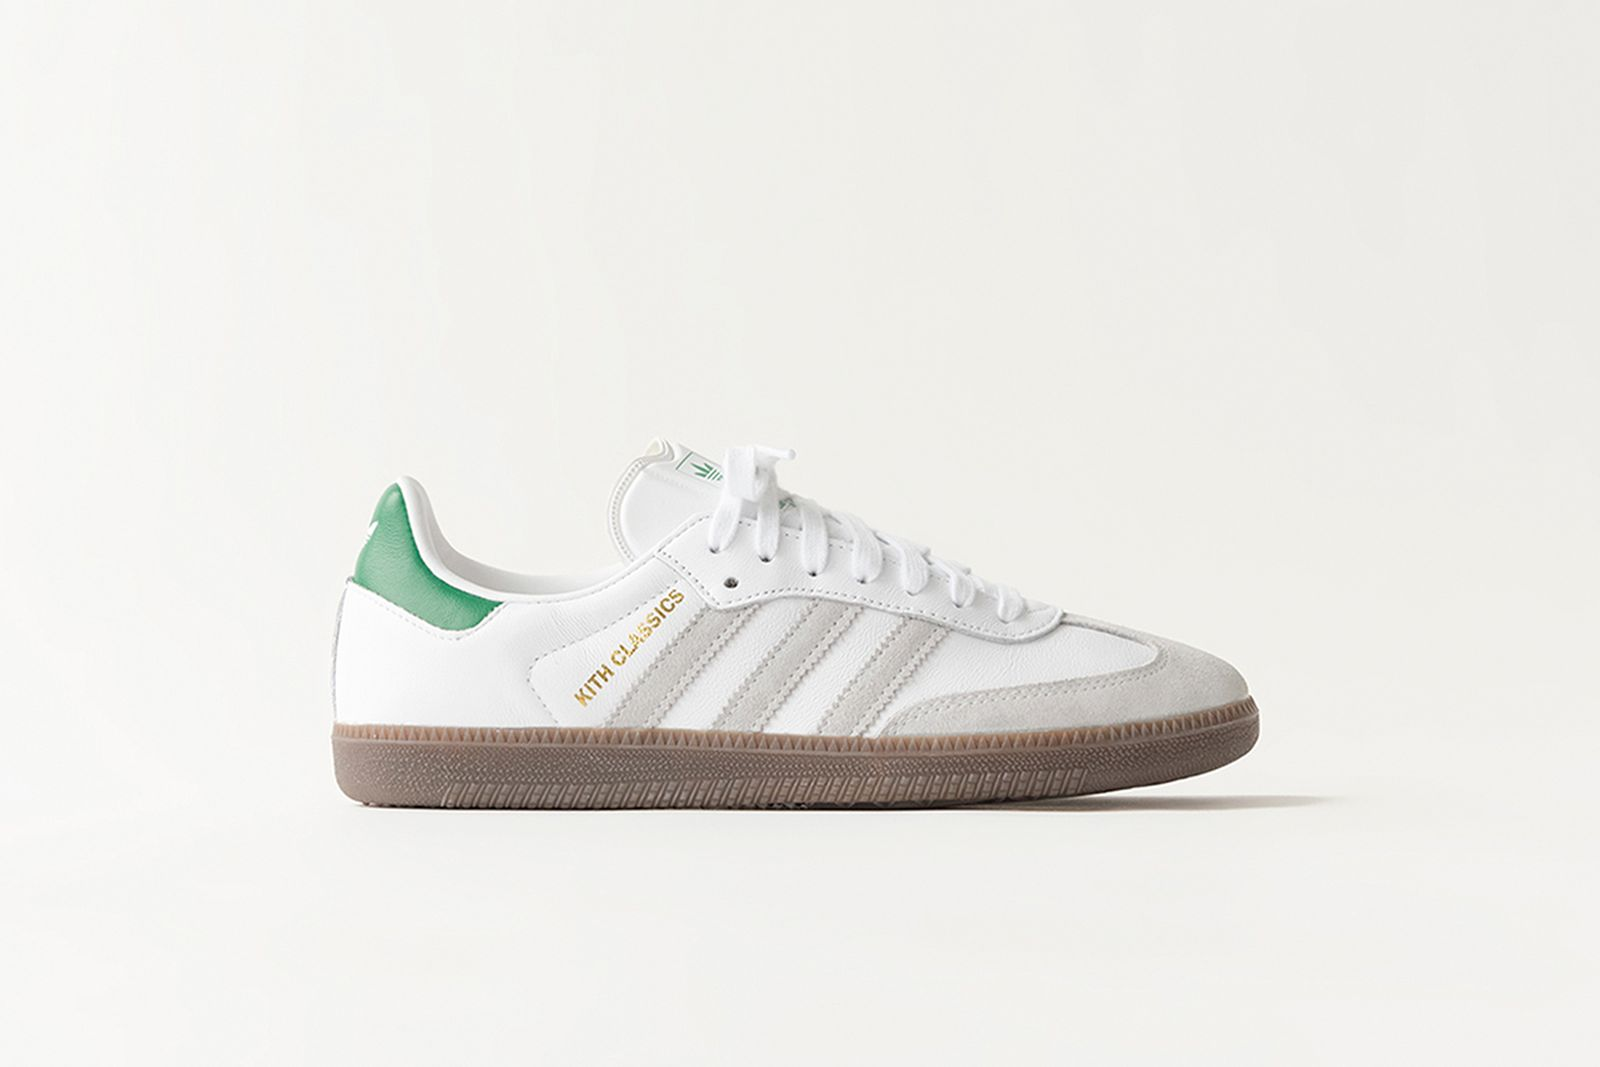 kith-adidas-summer-2021-release-info-09